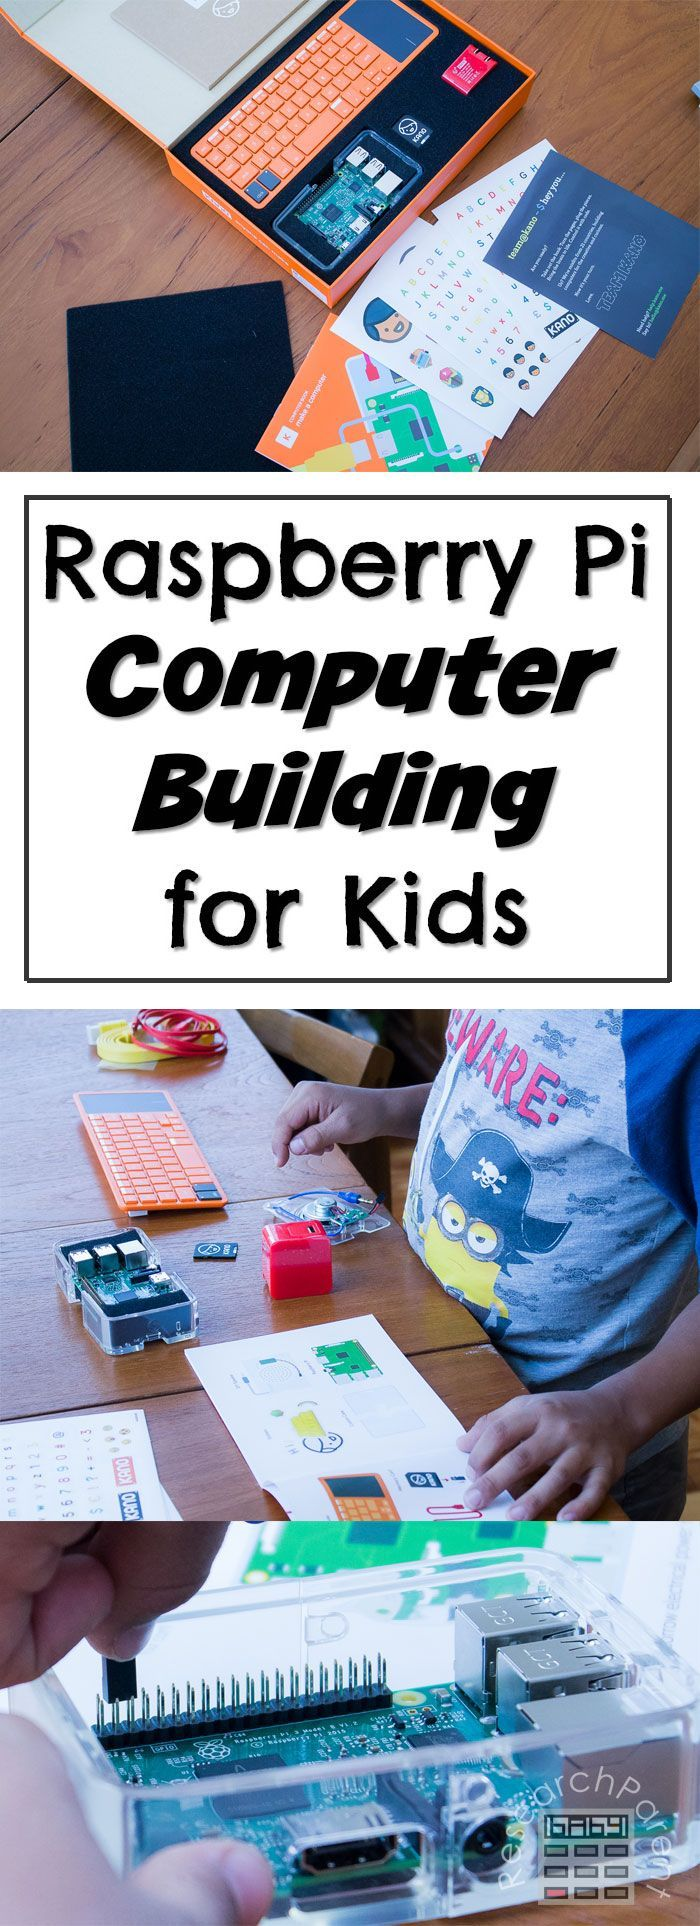 Learn how to make a simple, inexpensive Raspberry Pi computer using a Kano Computer Kit for kids.  via @researchparent